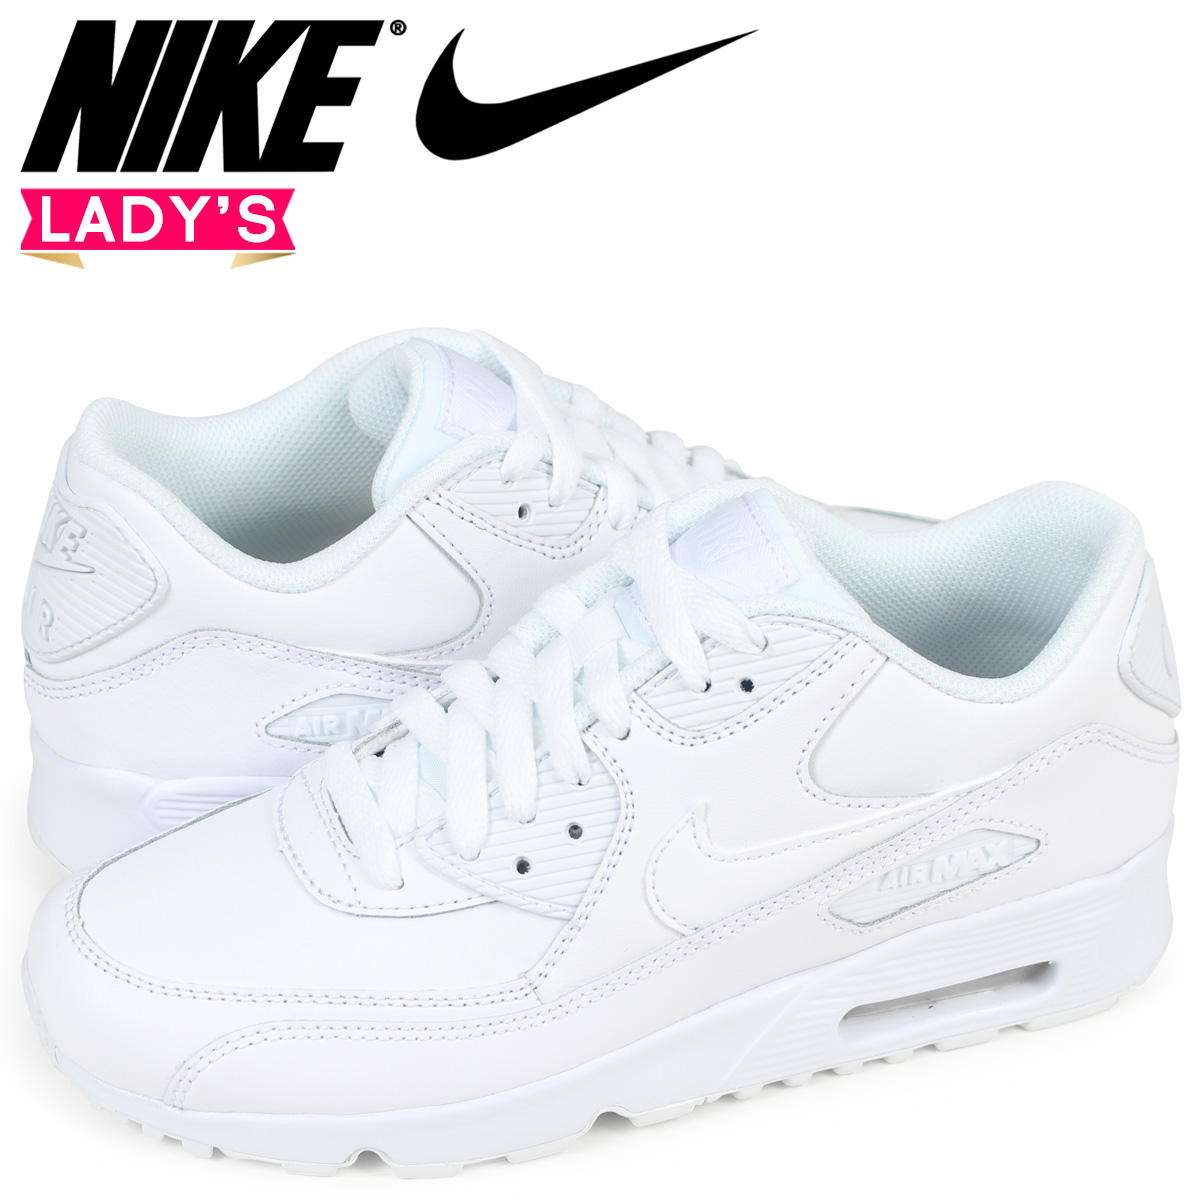 Nike Air Max Womens NIKE sneakers AIR MAX 90 LEATHER GS Air Max 833412-100  shoes white  11   26 new in stock  1d735b0a18